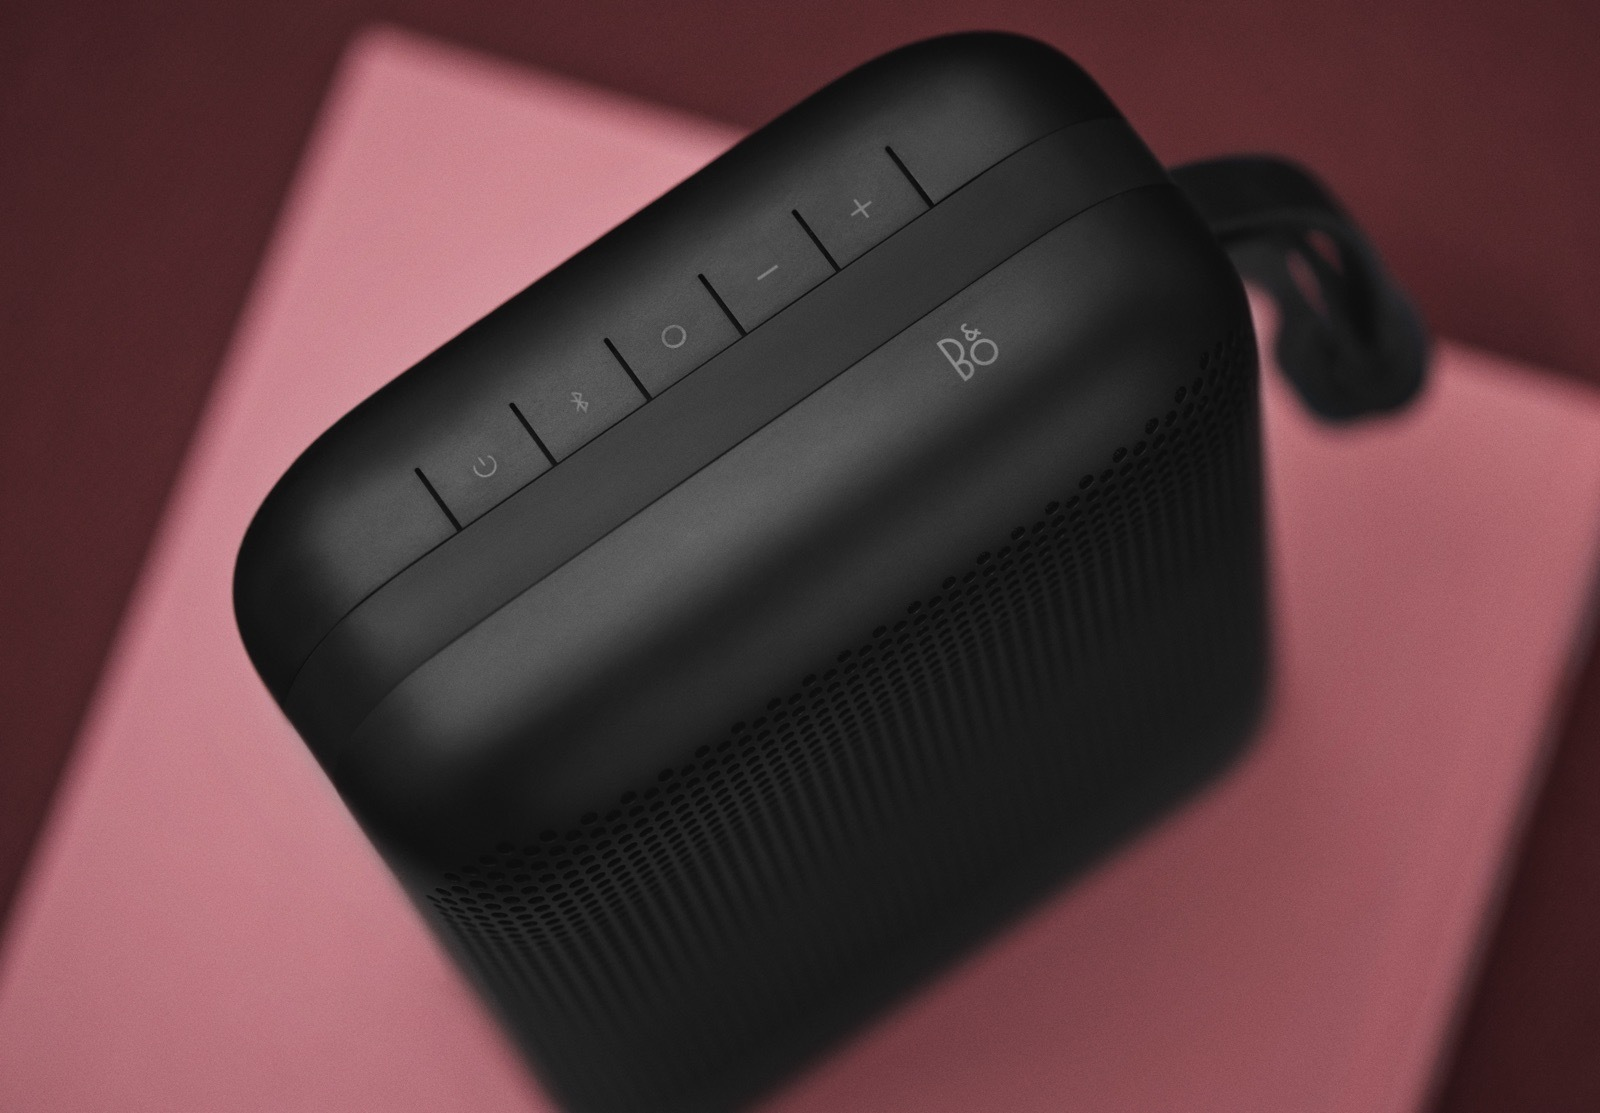 beoplay-p6-black-40780485244-o-1.jpg